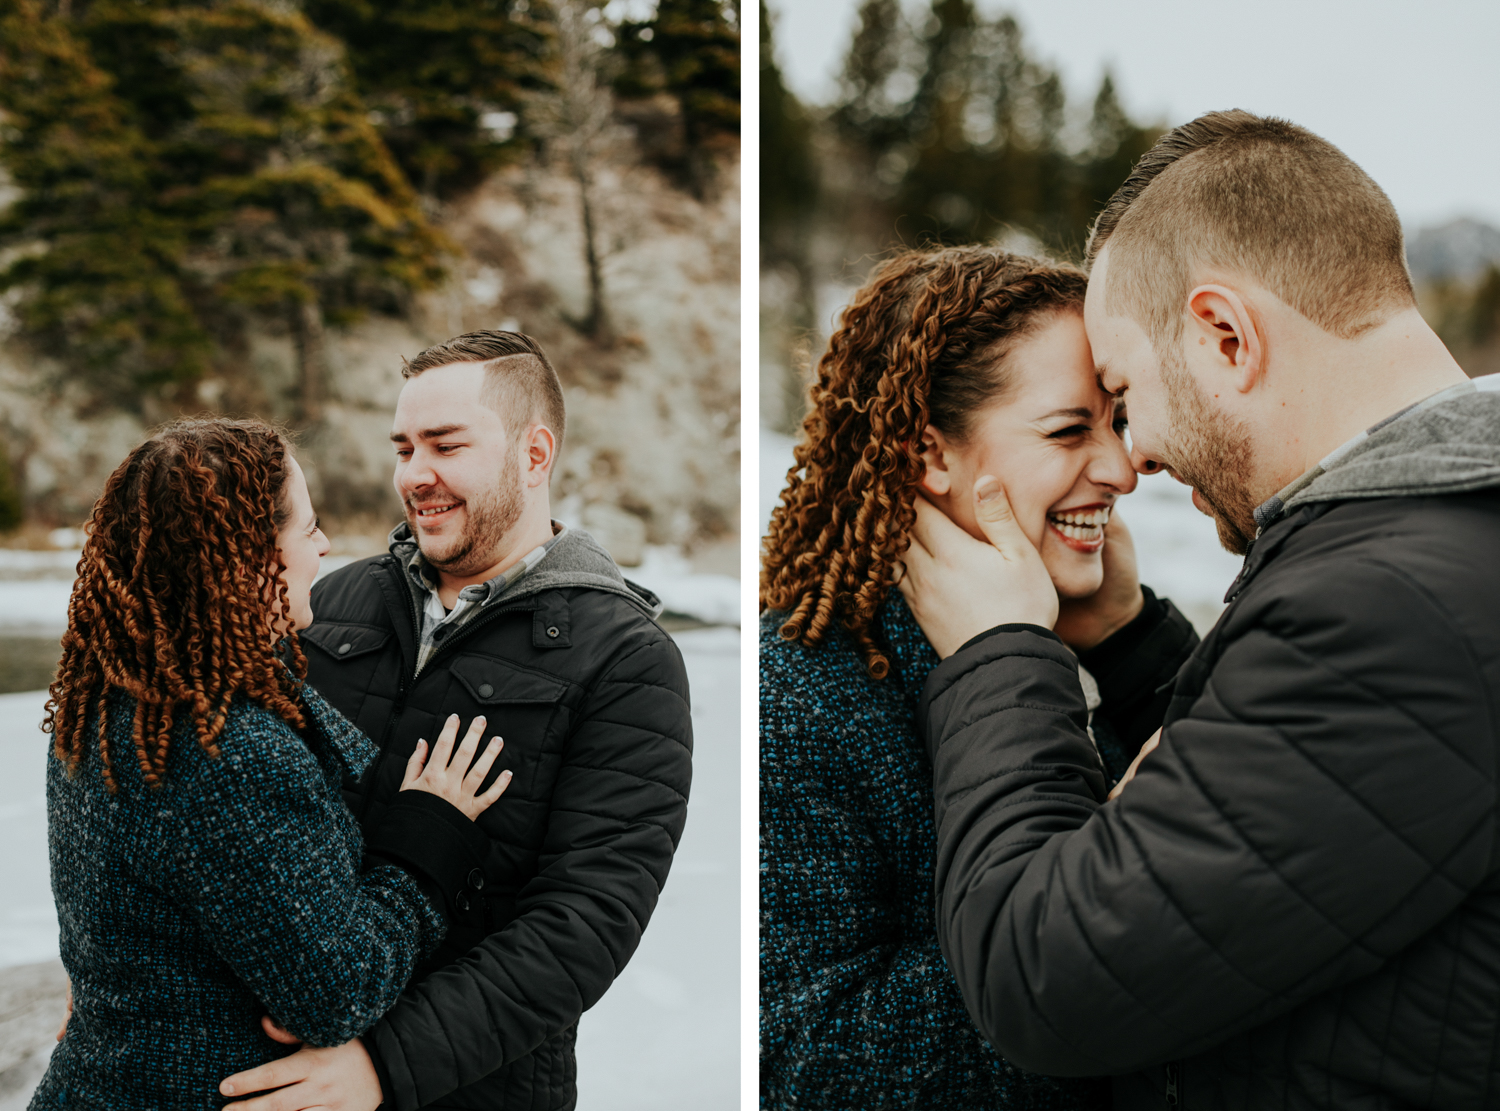 waterton-photographer-love-and-be-loved-photography-trent-danielle-engagement-winter-picture-image-photo-59.jpg